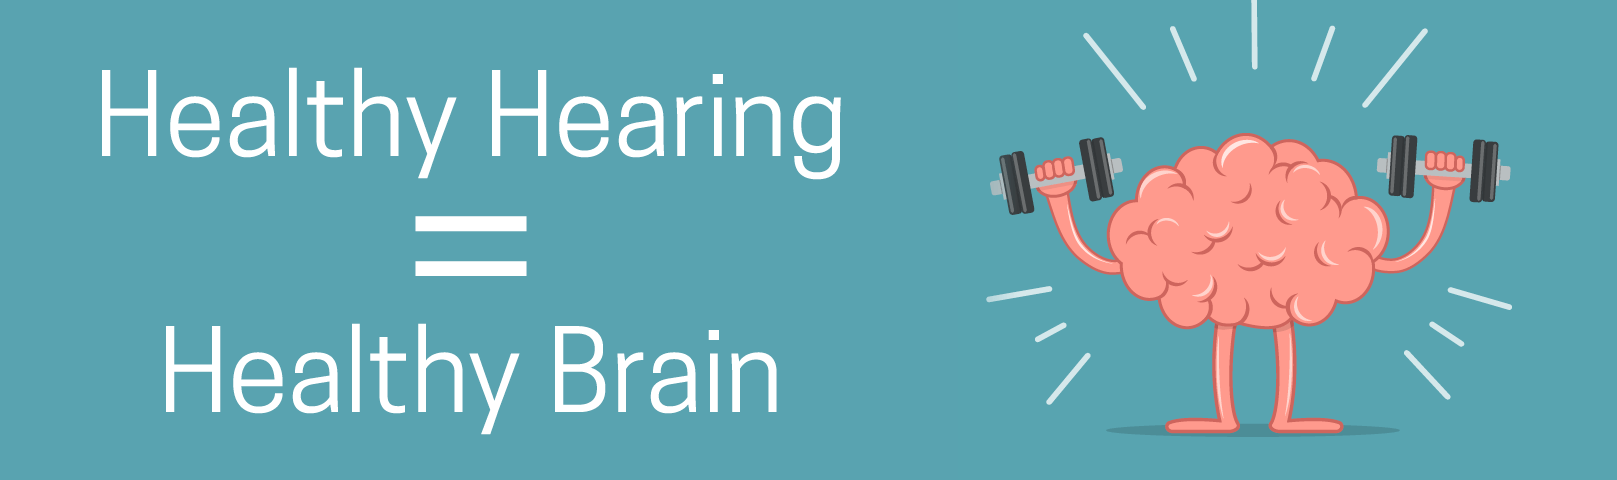 Healthy Hearing = Healthy Brain